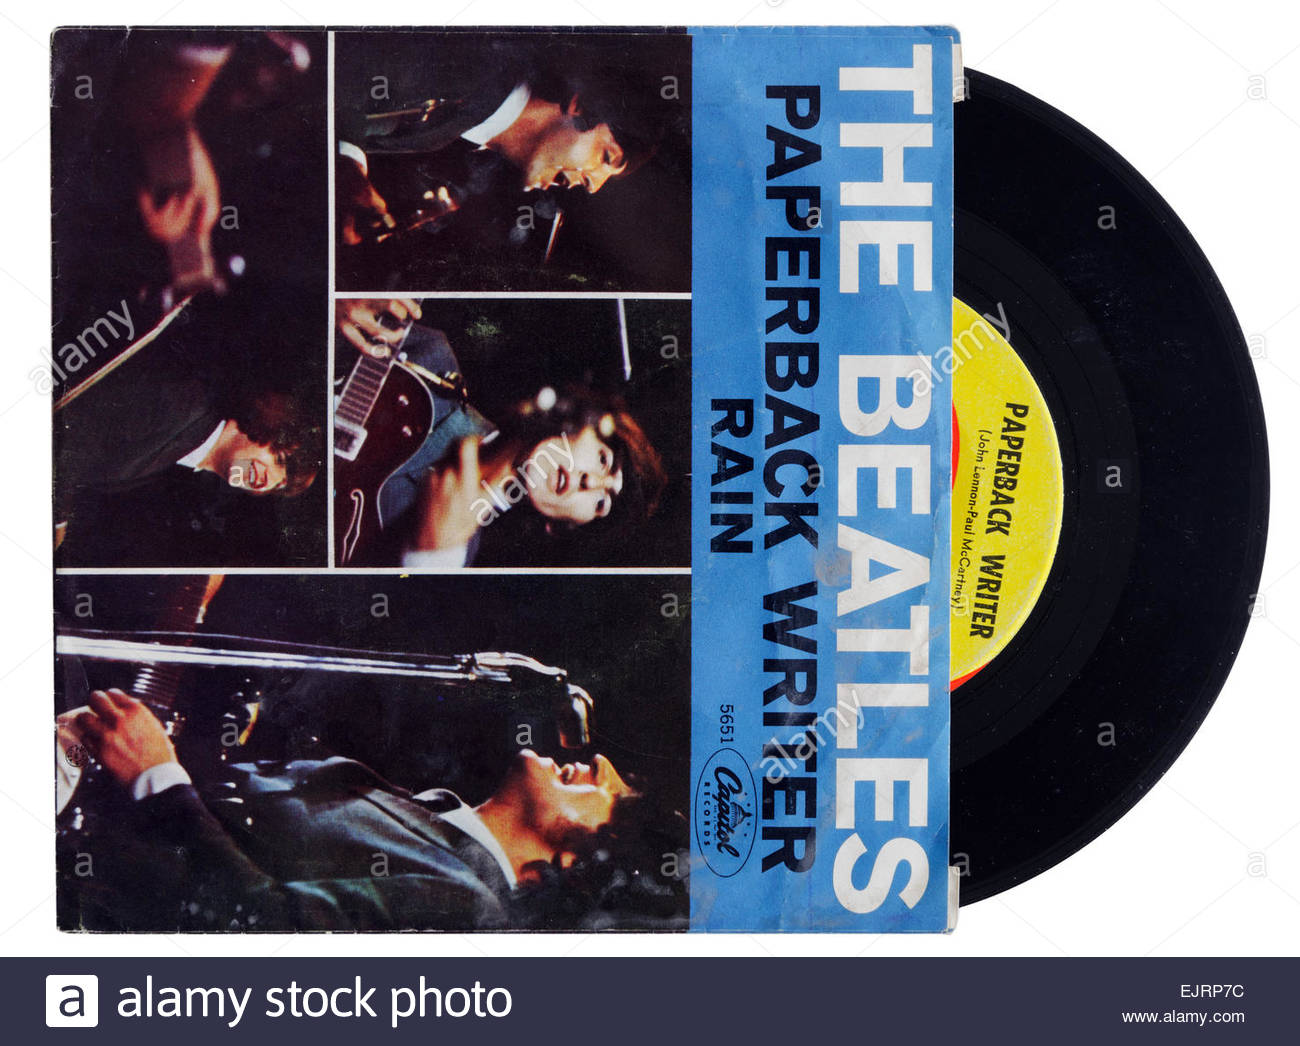 Beatles Paperback Writer single - Stock Image